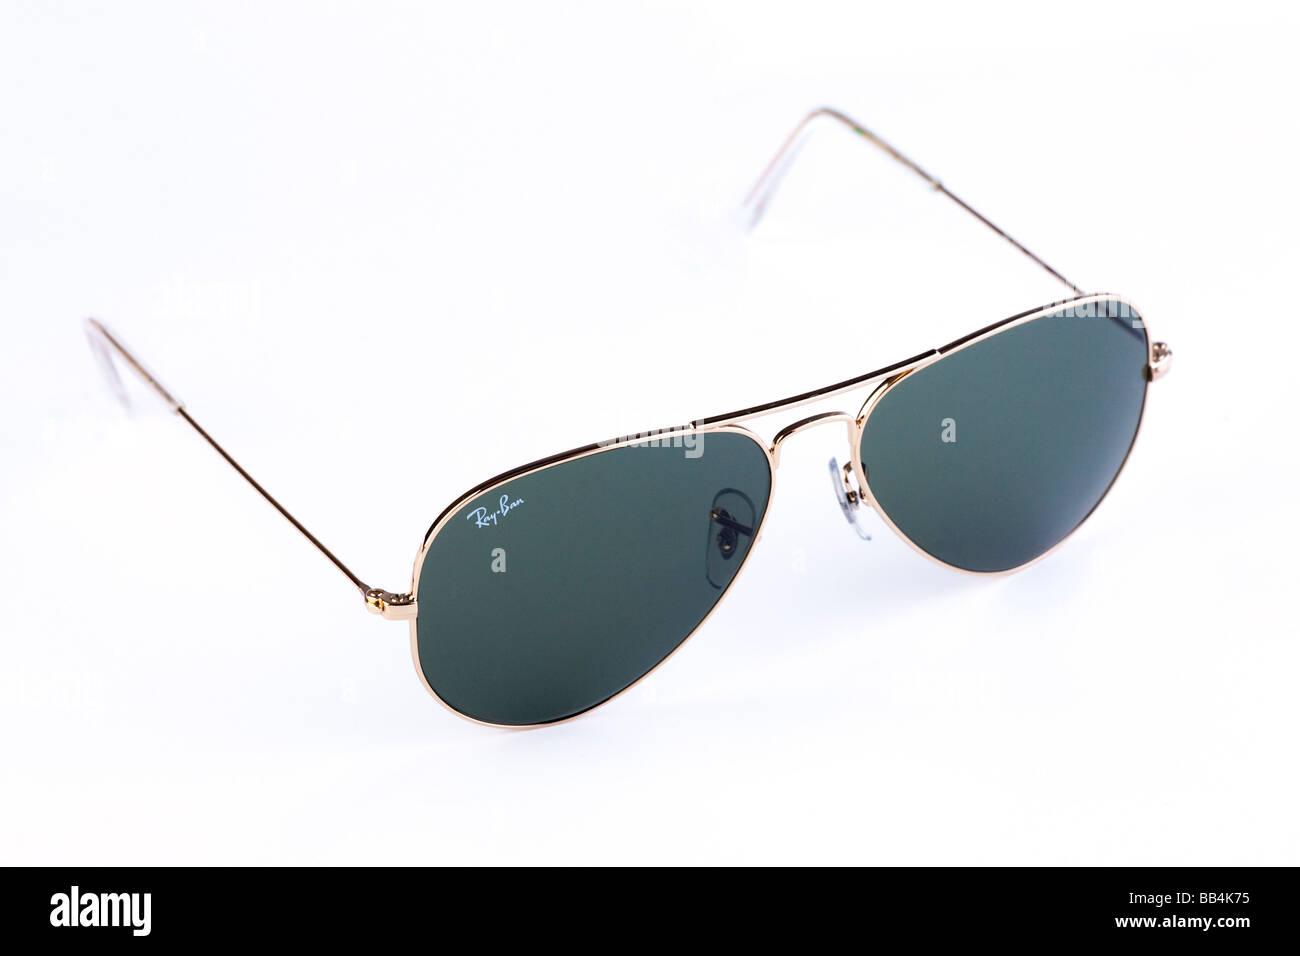 307a71c820 Ray Ban Stock Photos & Ray Ban Stock Images - Alamy